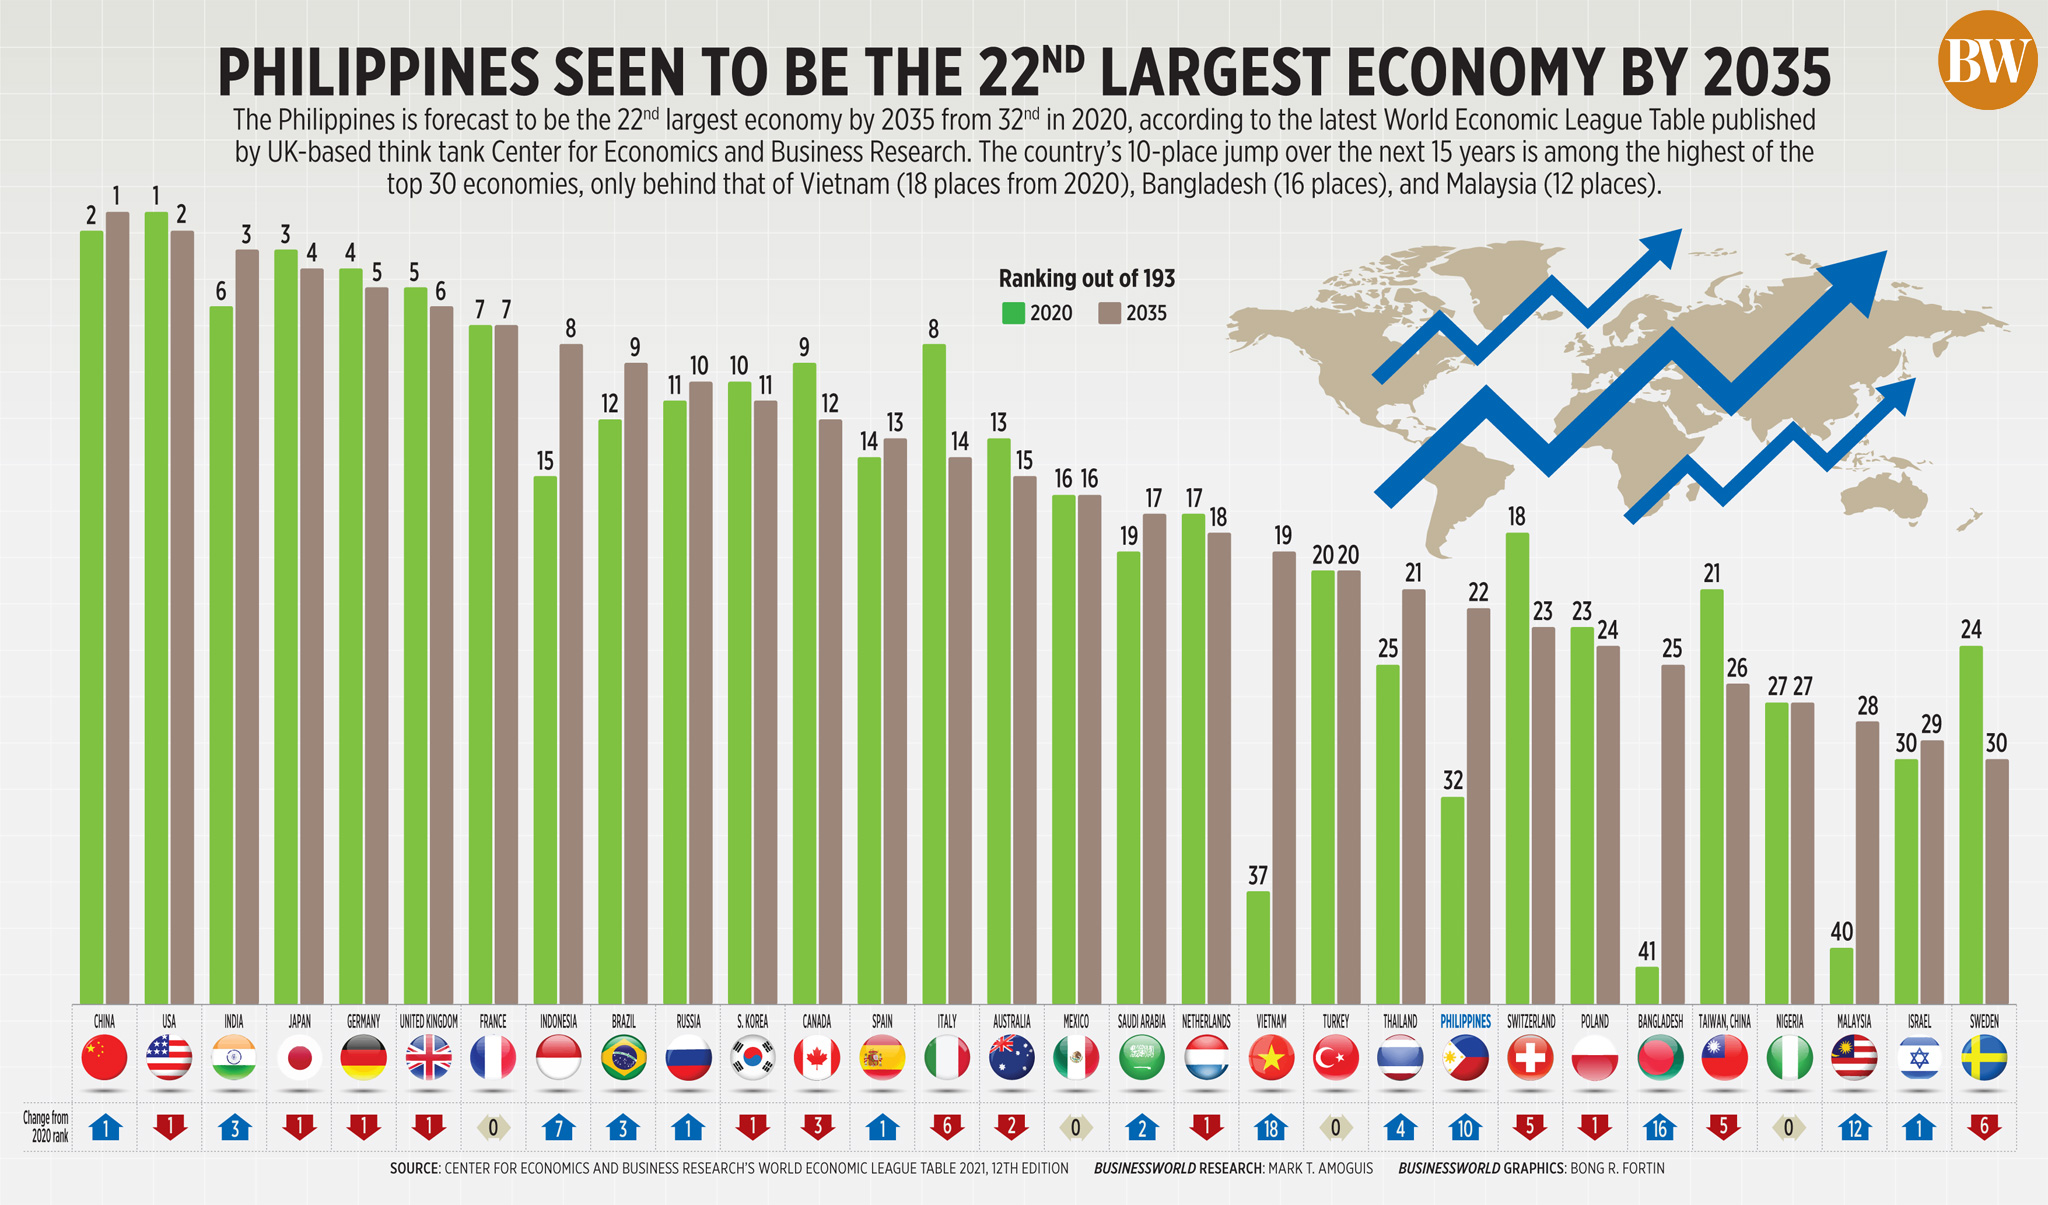 Philippines seen to be the 22<sup>nd</sup> largest economy by 2035